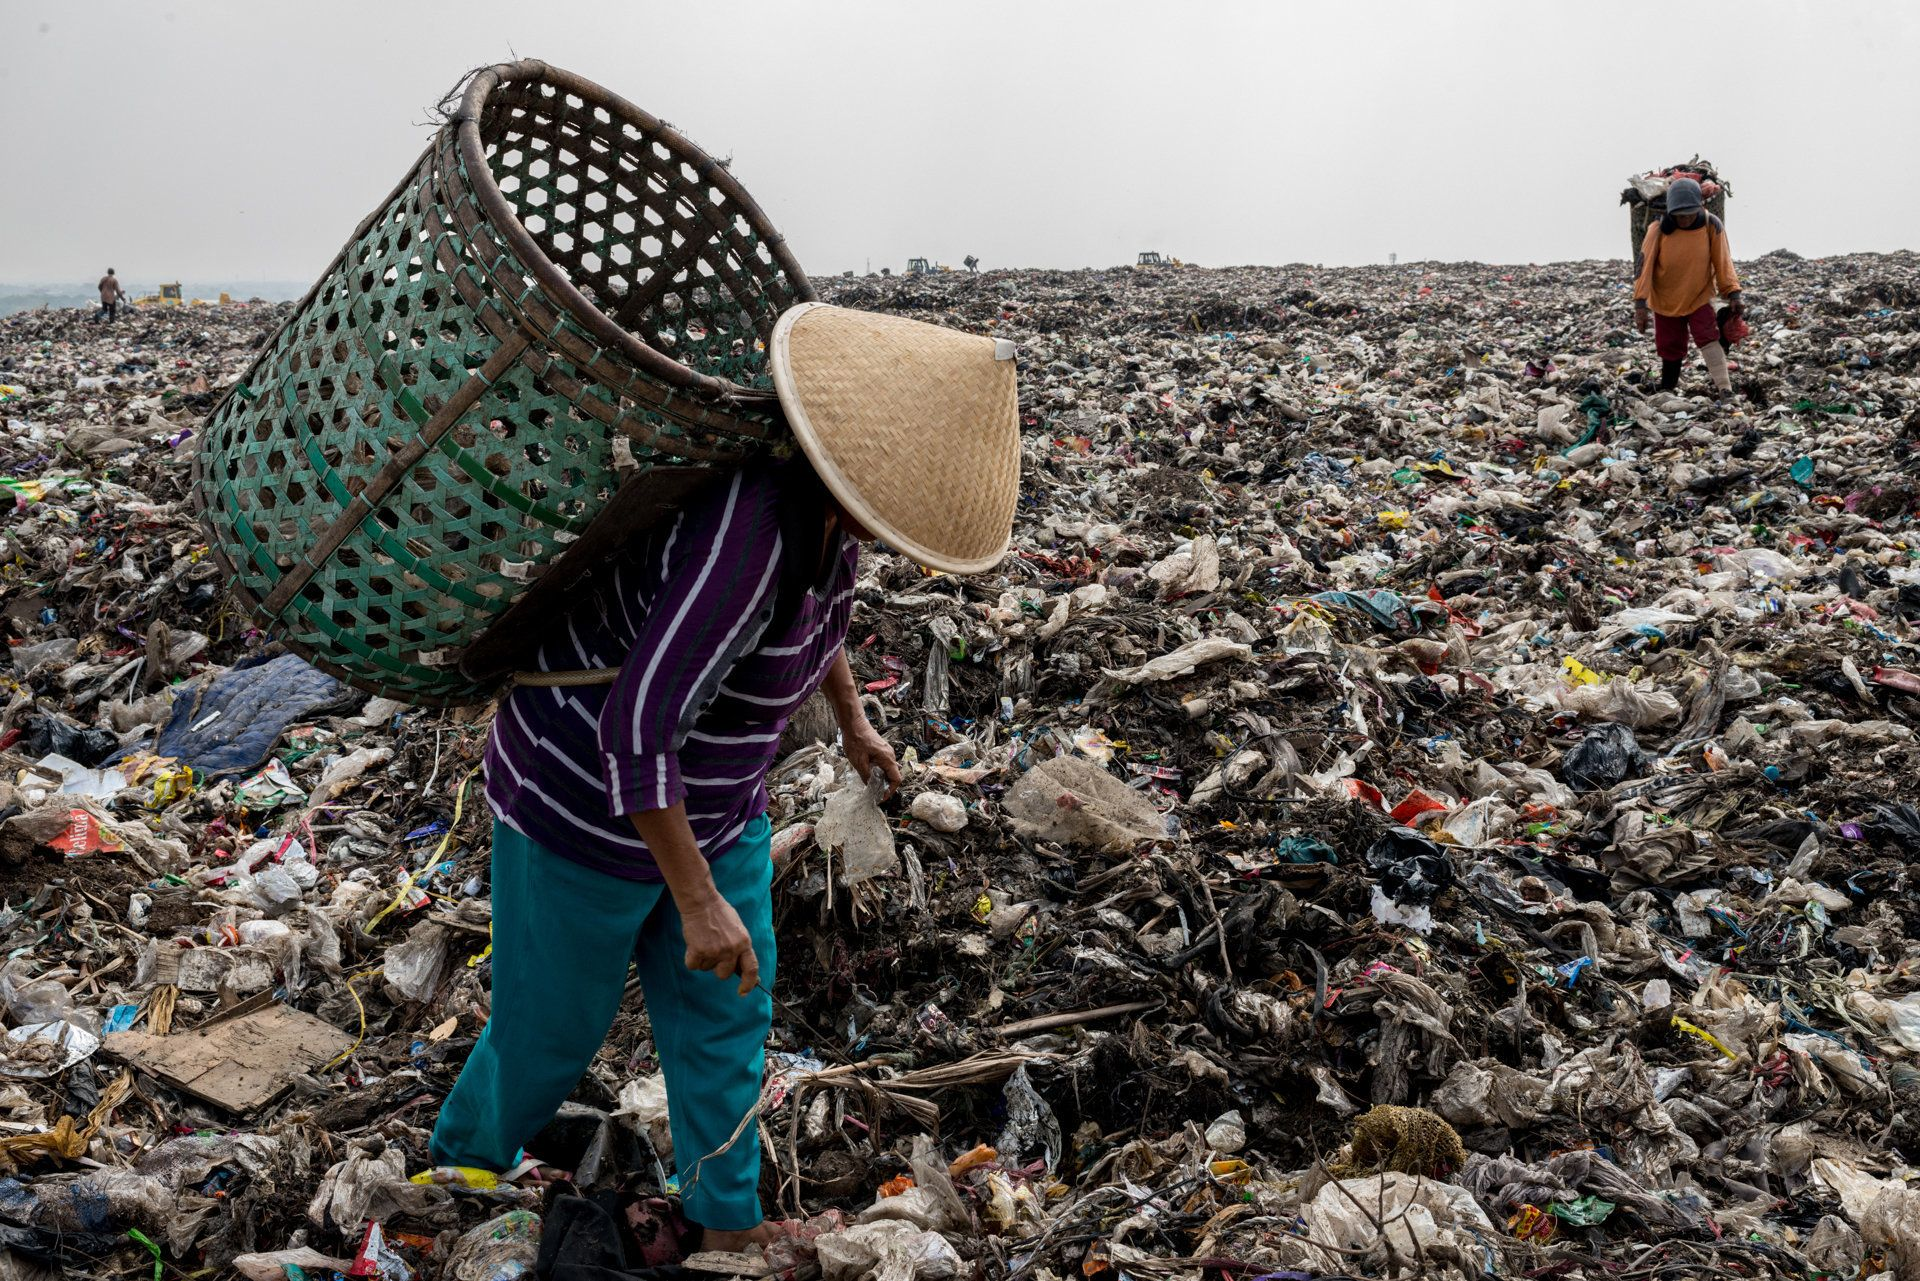 Mak Muji, 55, collects plastic garbage on the top of the waste mountain that is Indonesia's largest landfill....